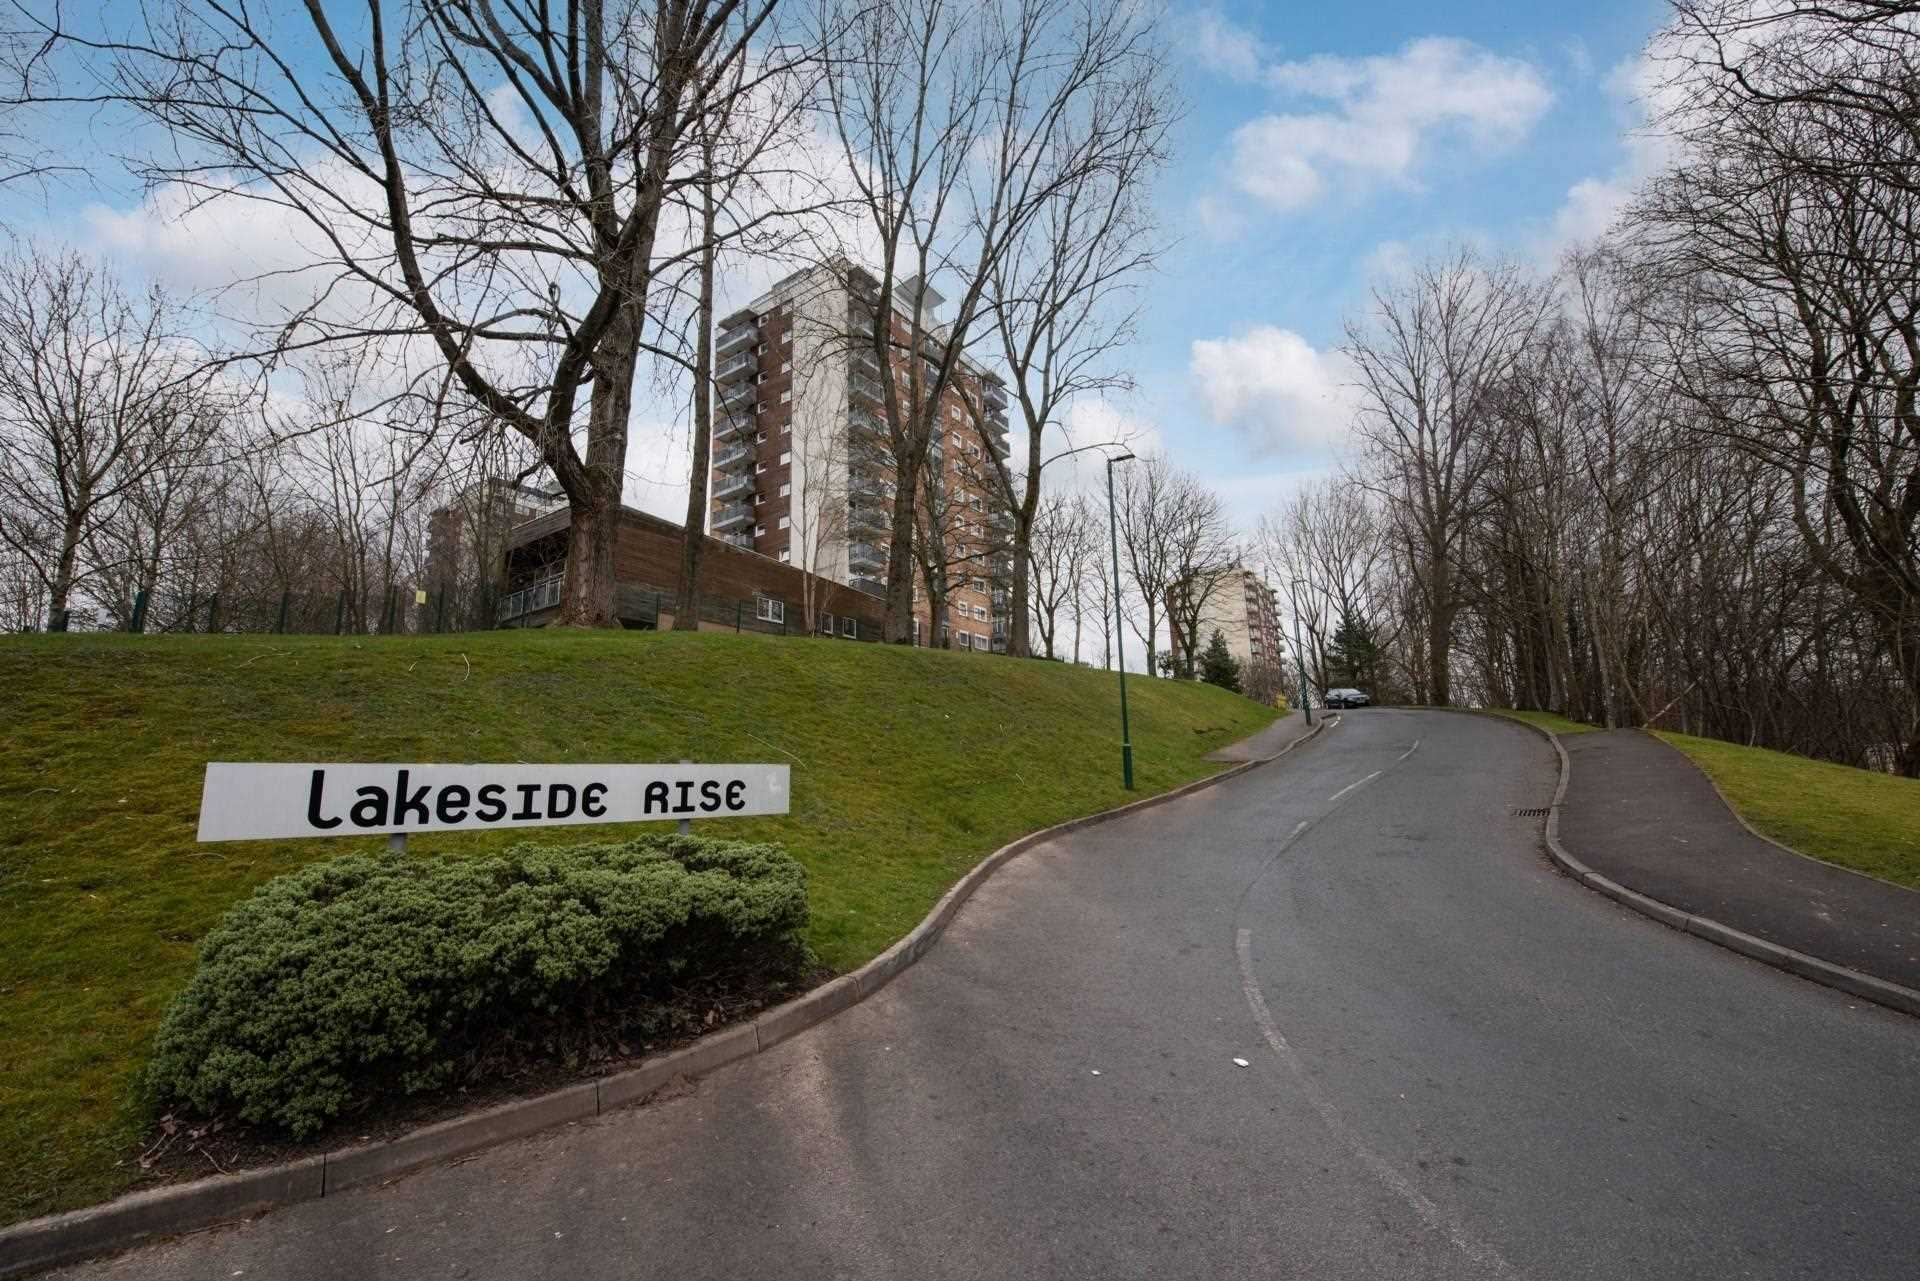 Lakeside Rise, Manchester, Image 1